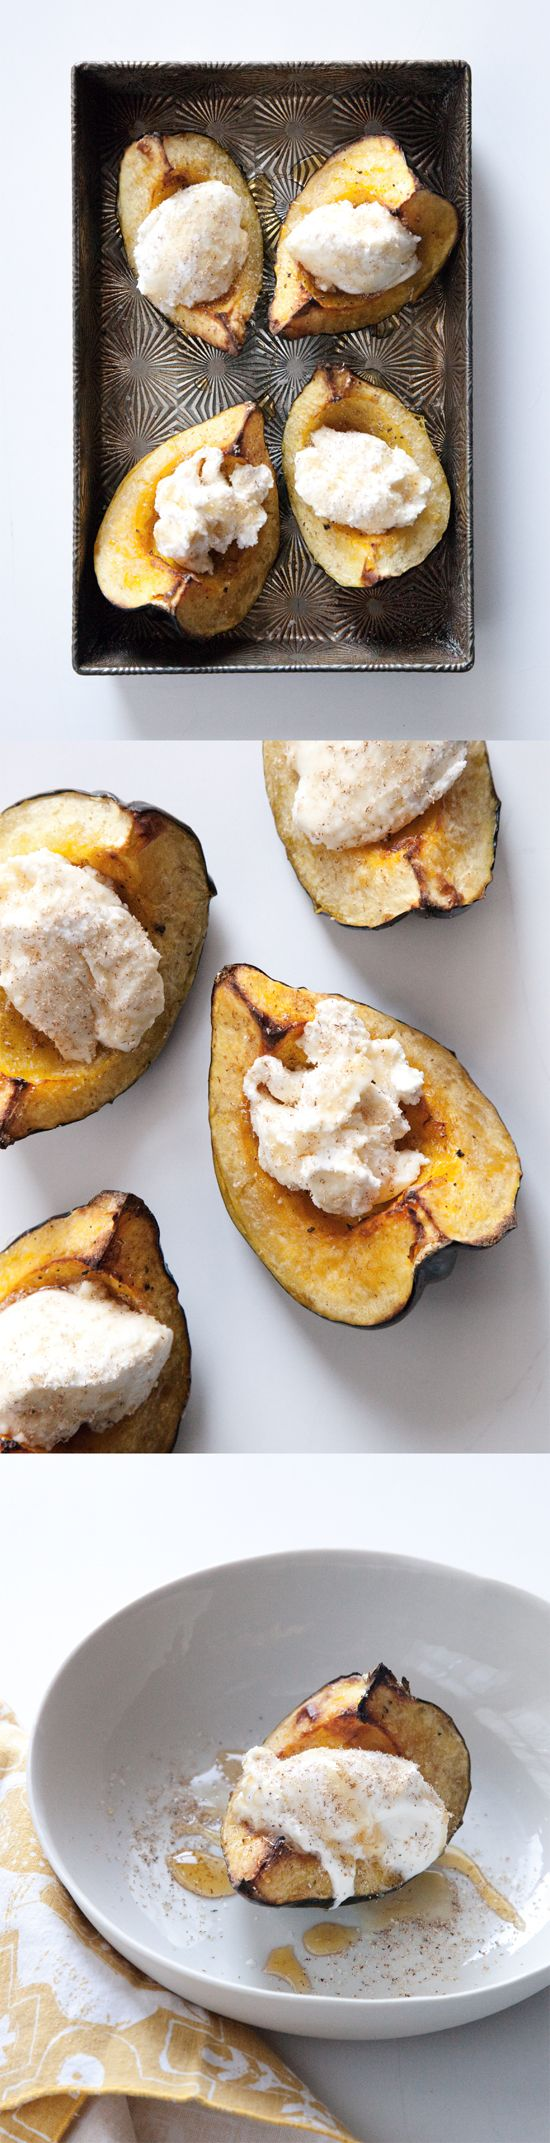 ... | Acorn squash baked, Acorn squash roasted and Stuffed acorn squash